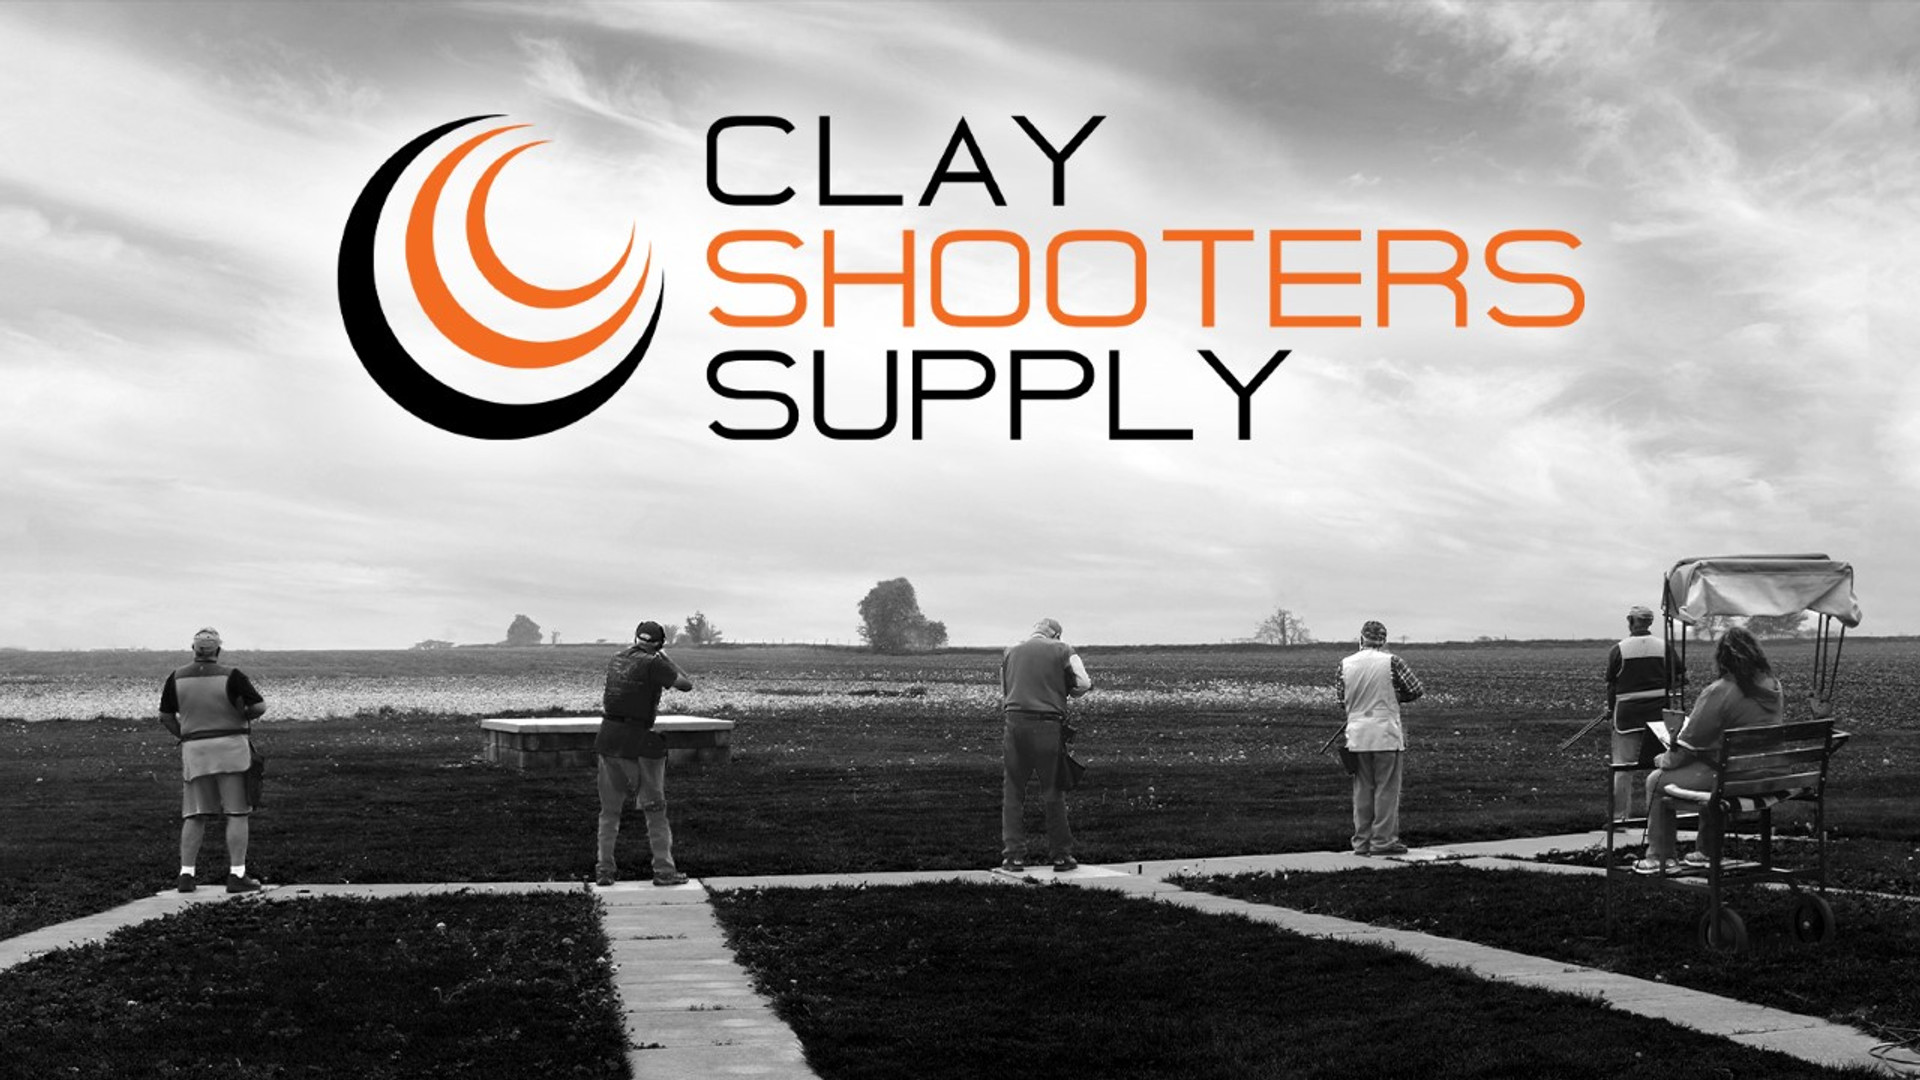 Clay Shooters Supply